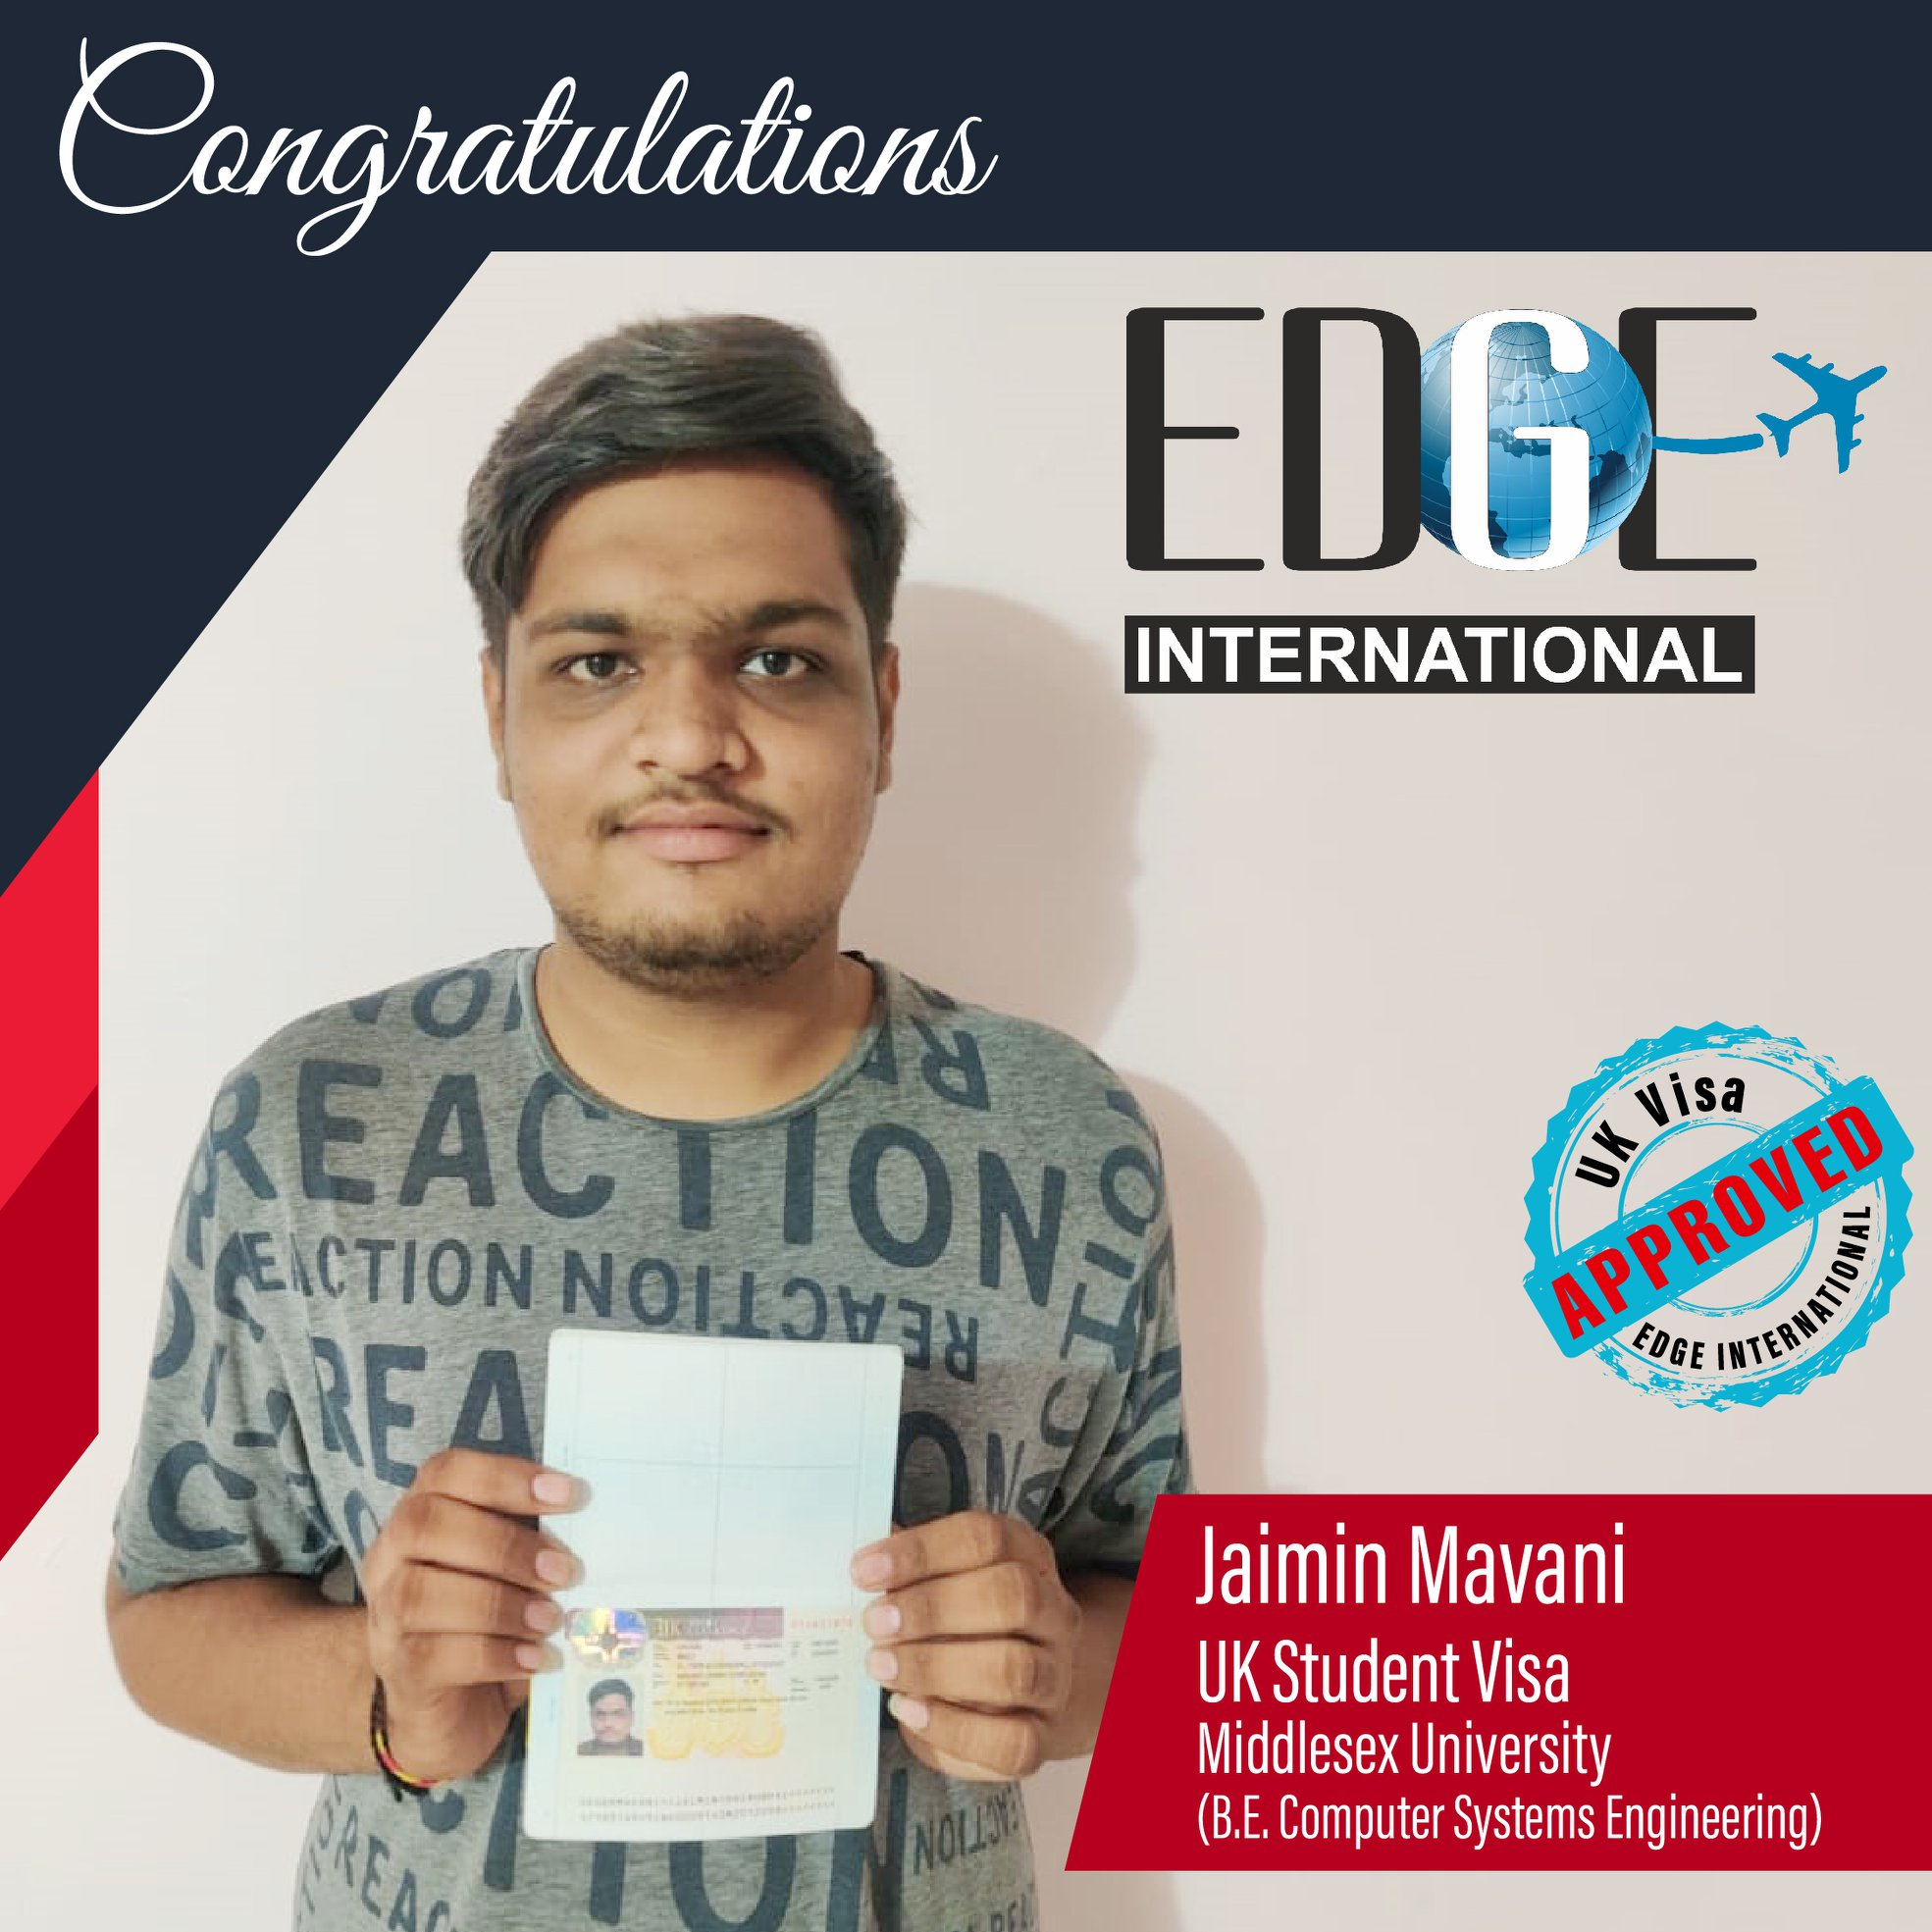 Congratulations 𝗝𝗮𝗶𝗺𝗶𝗻 𝗠𝗮𝘃𝗮𝗻𝗶 for Securing UKStudentVisa at